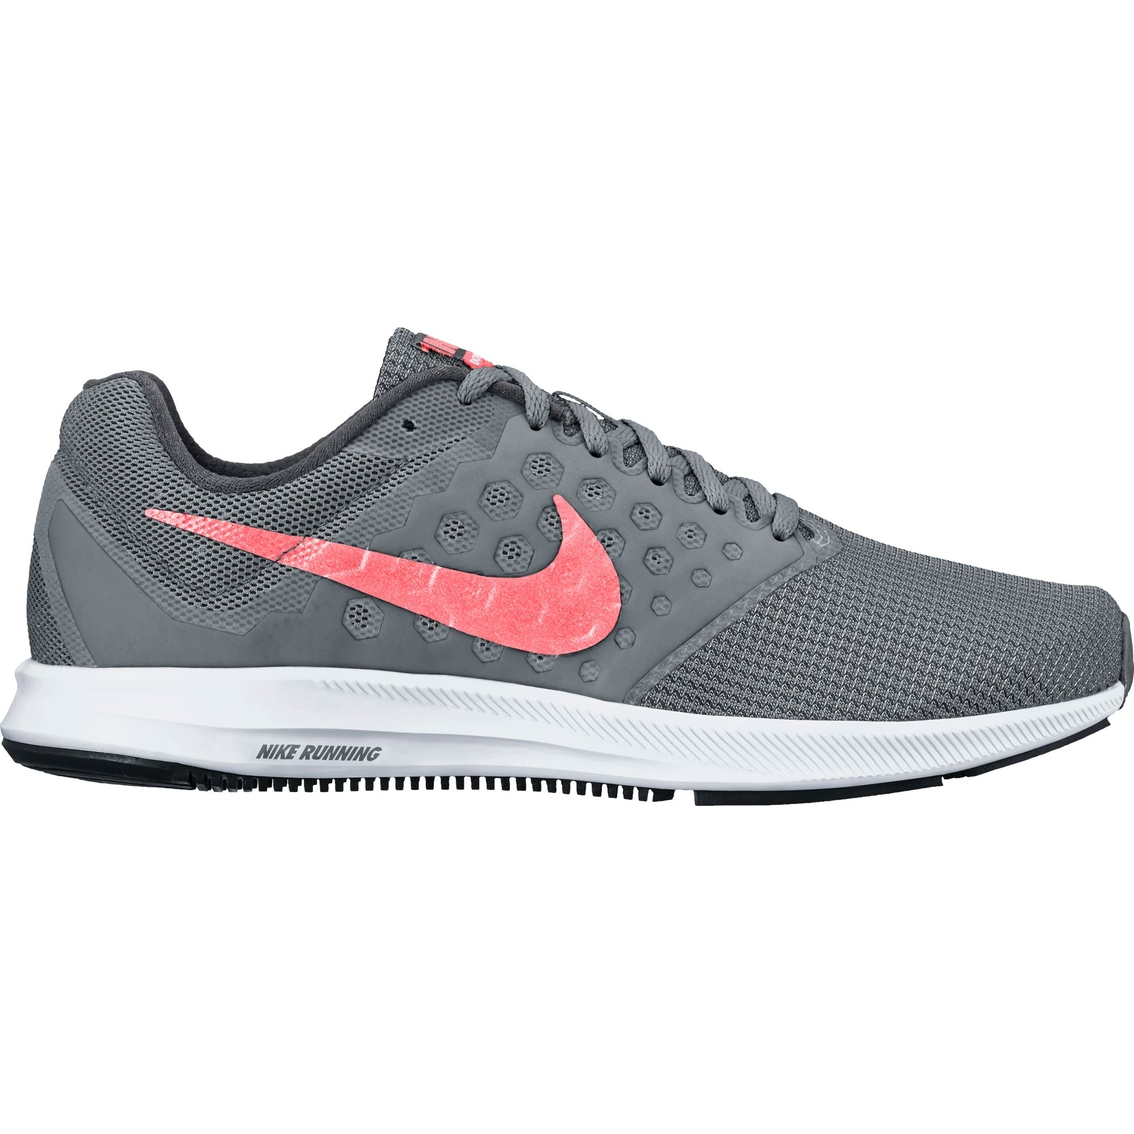 reputable site 61a14 b2524 Nike Womens Downshifter 7 Running Shoes